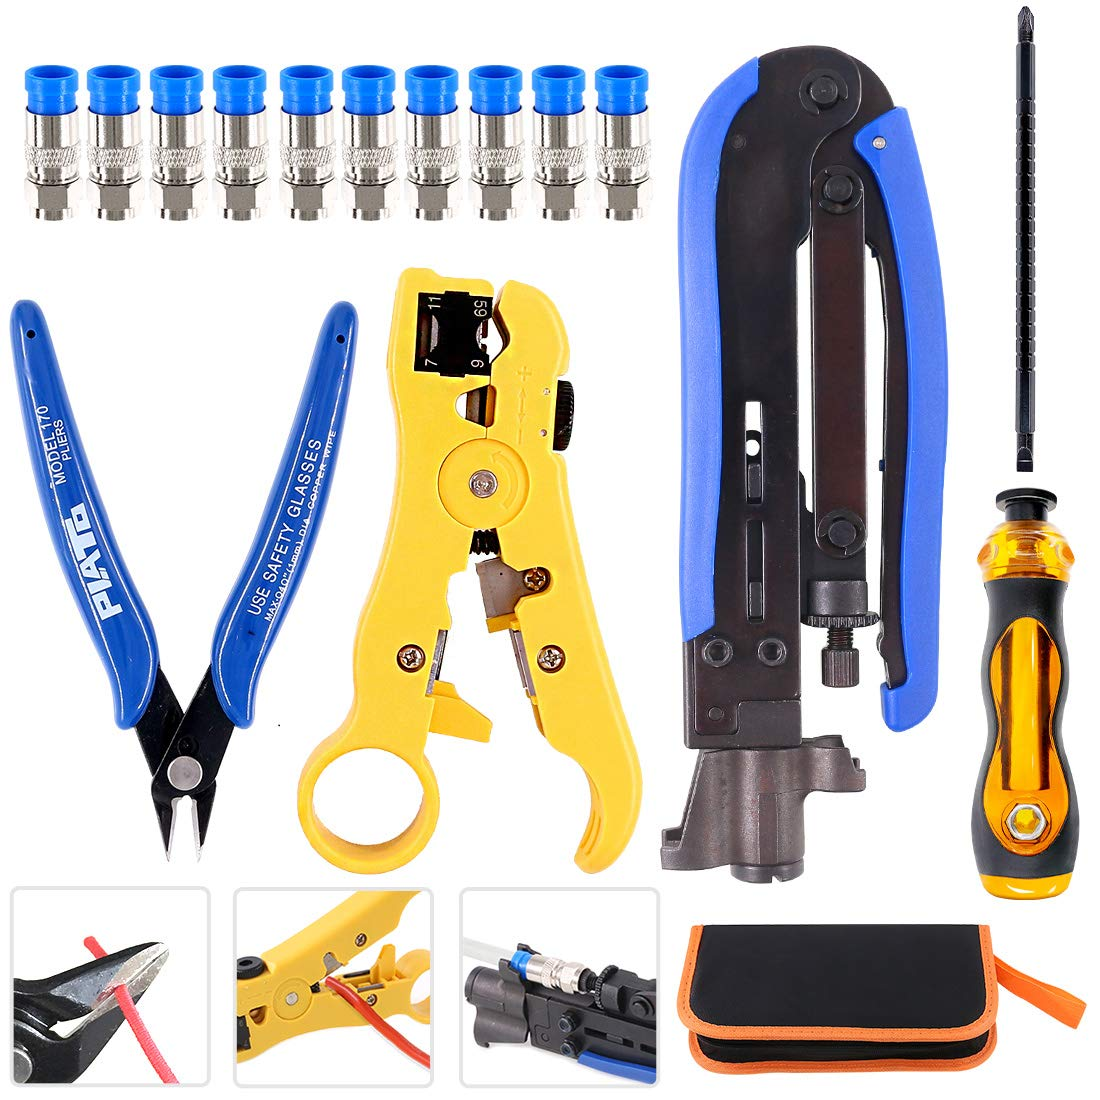 Hilitchi 5 in 1 Coaxial Compression Tool with Instruction Manual Coax Cable Crimper Cable Stripper RG6 RG59 RG11 75-5 75-7 Screwdriver and Micro Cutter with 10 PCS F Compression Connectors Blue RG6 by Hilitchi